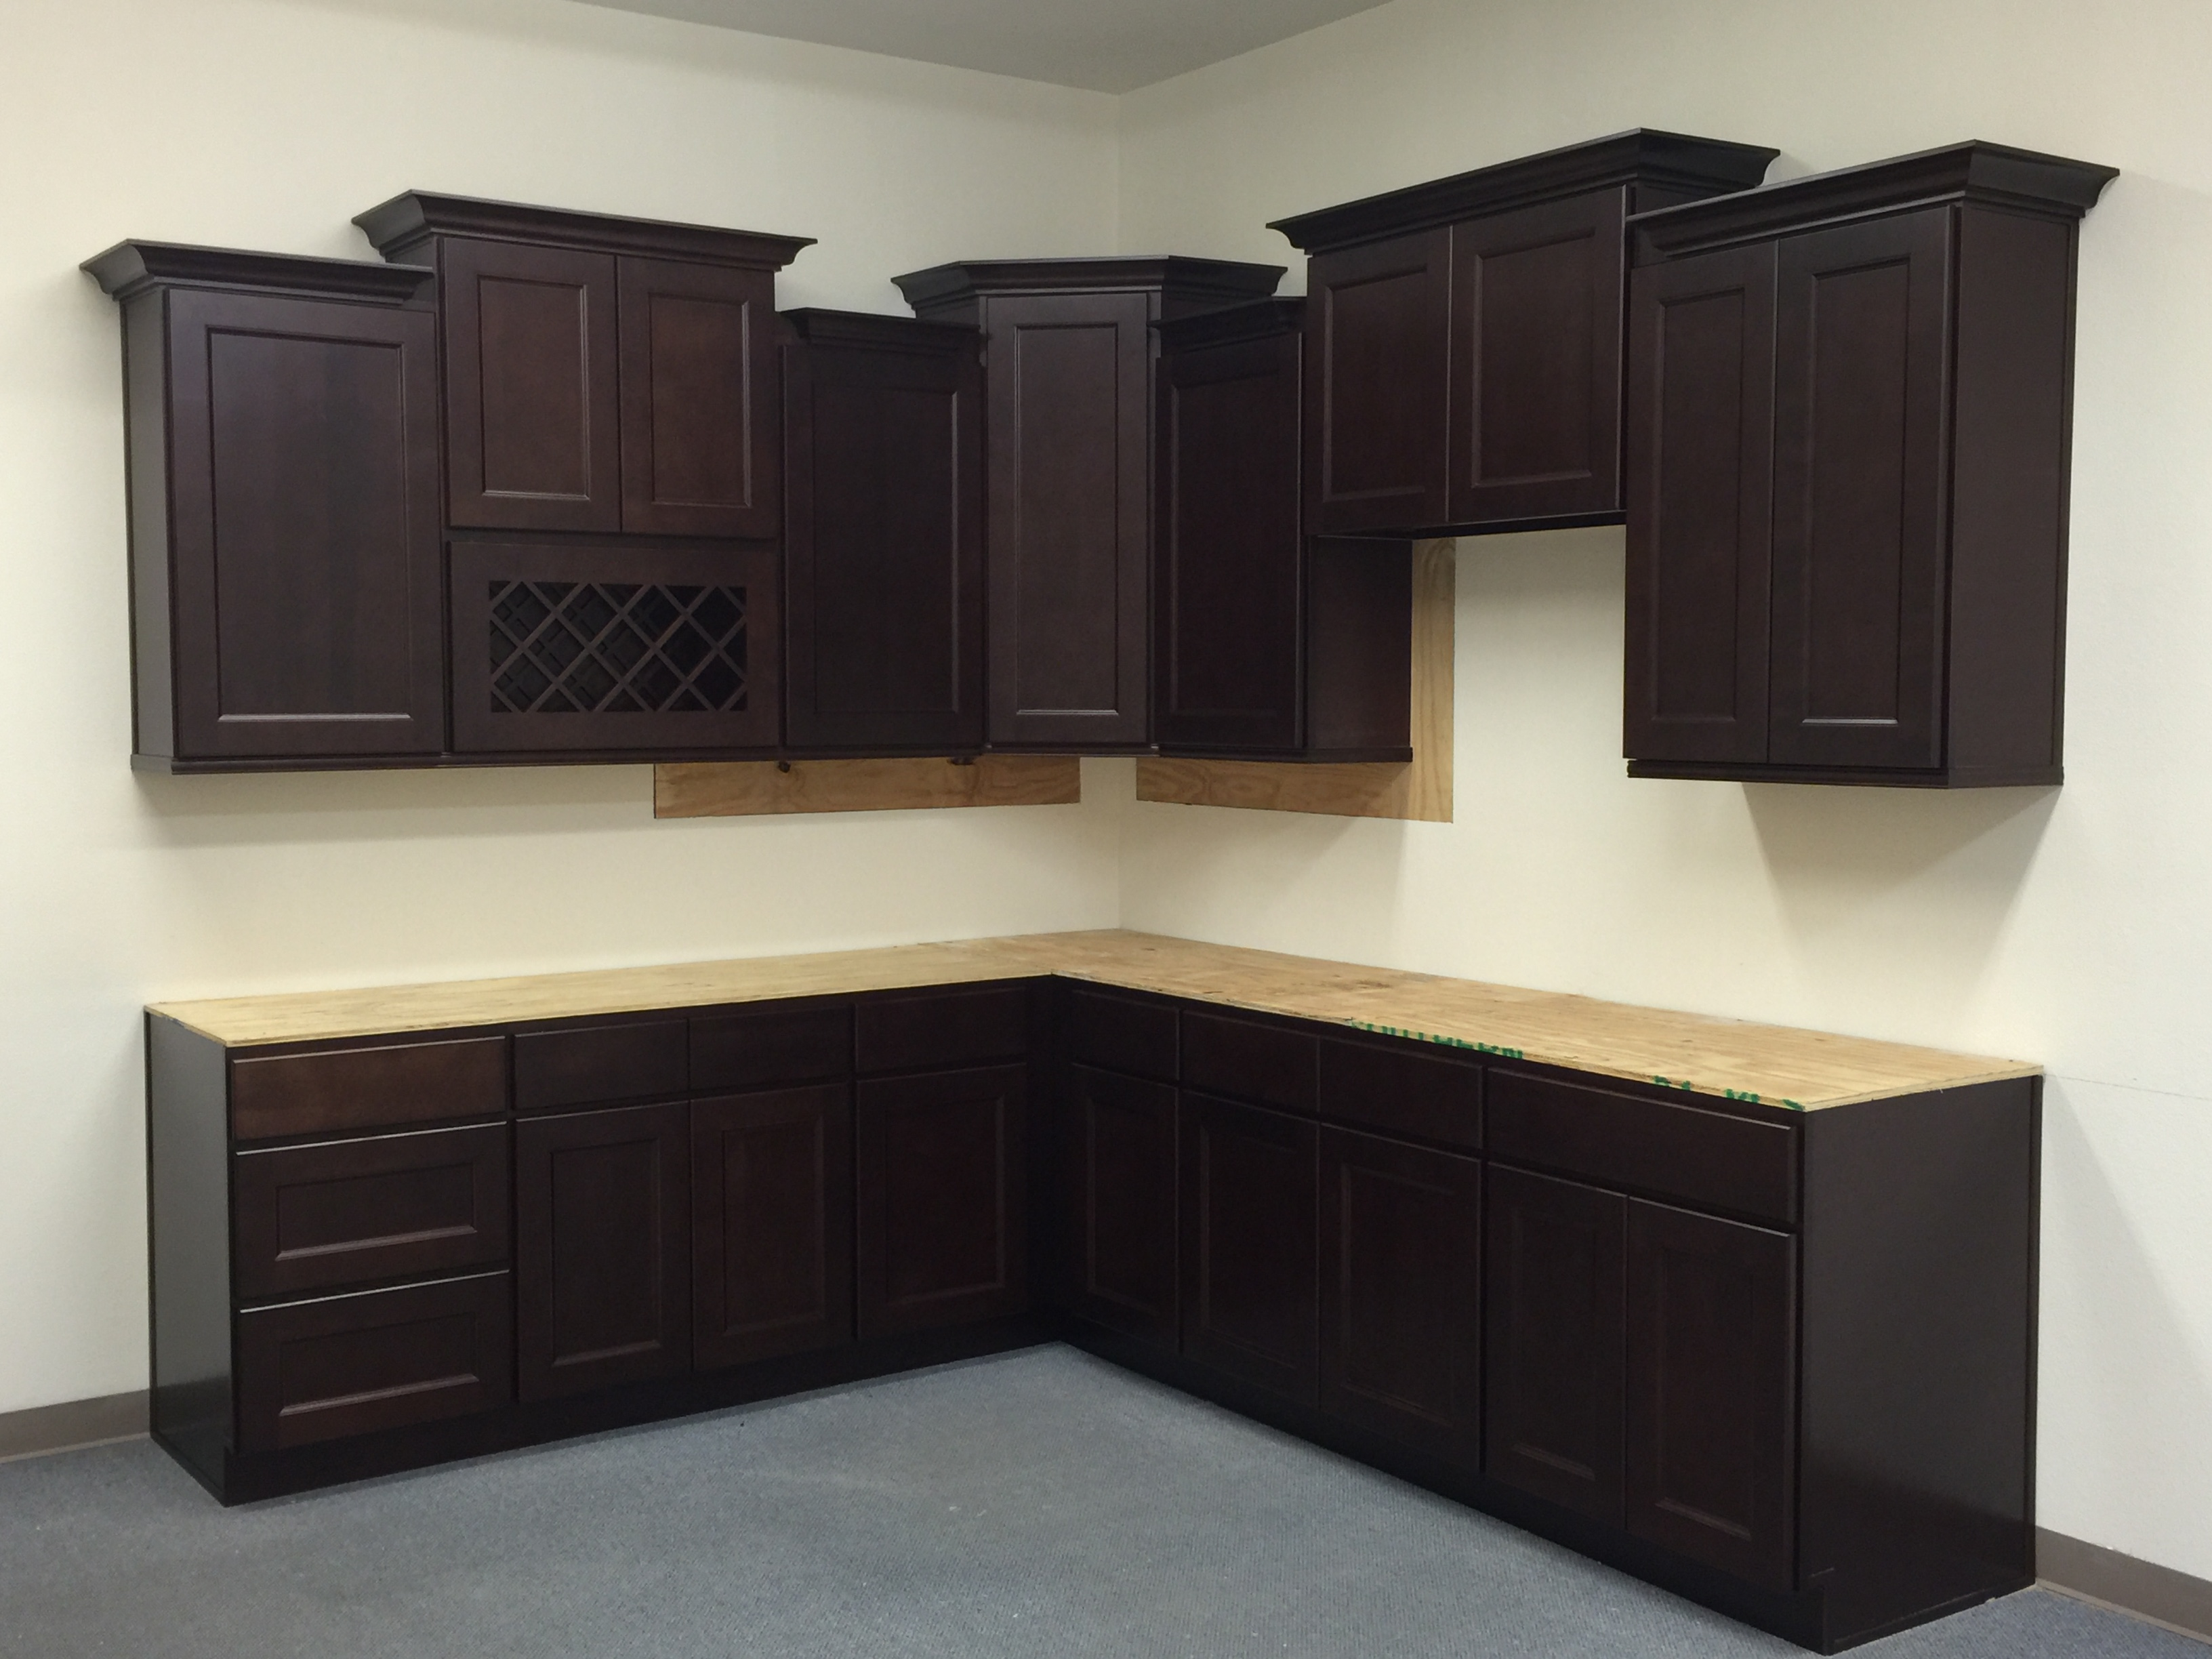 Aaa Cabinetry Inc 2453 Rosemead Blvd South El Monte Ca 91733 Yp Com